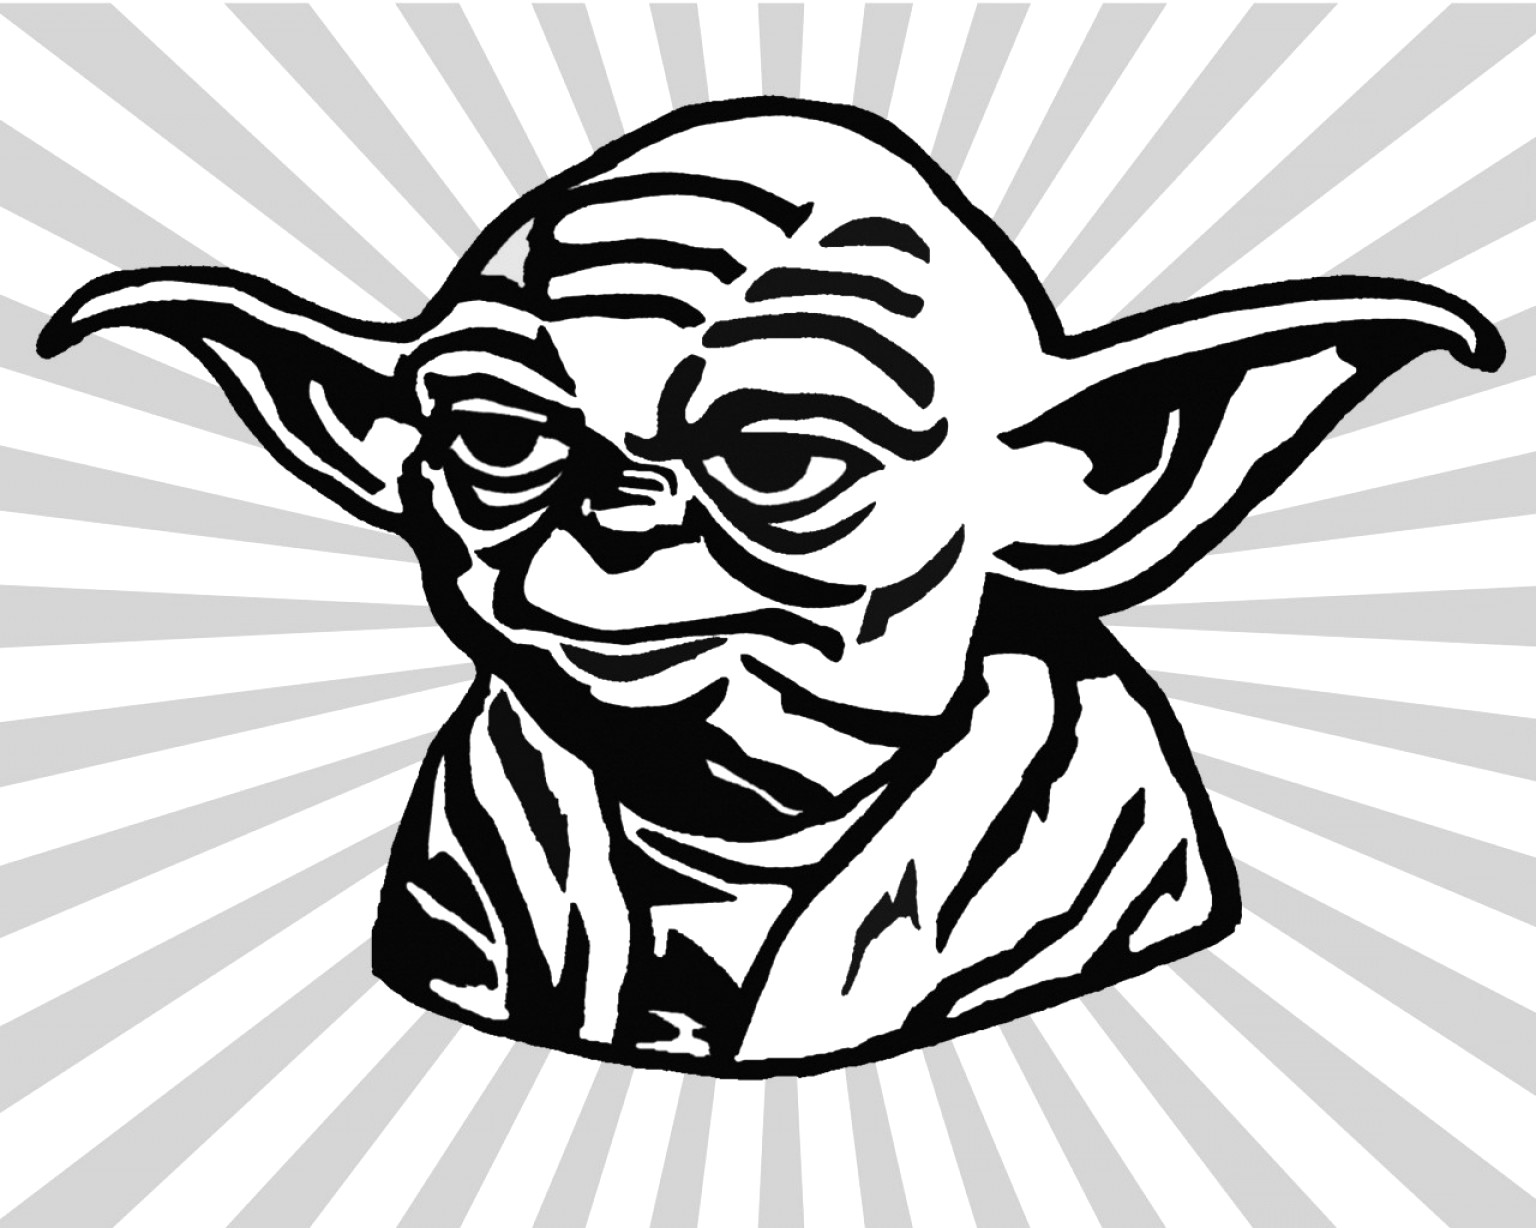 Yoda clipart black and white 7 » Clipart Station.